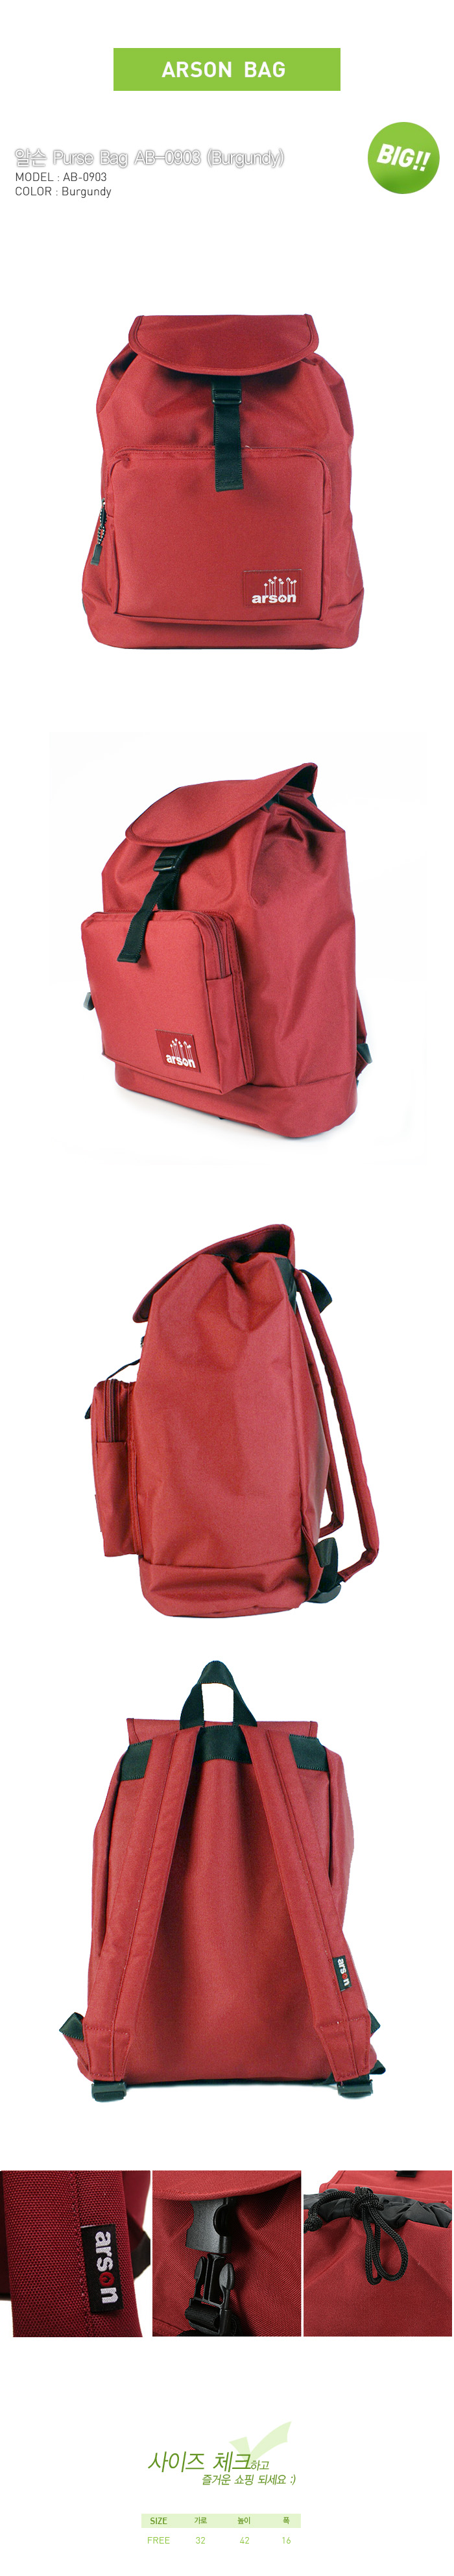 [ ARSON ] AB-0903 (Burgundy)/Backpack School Bag